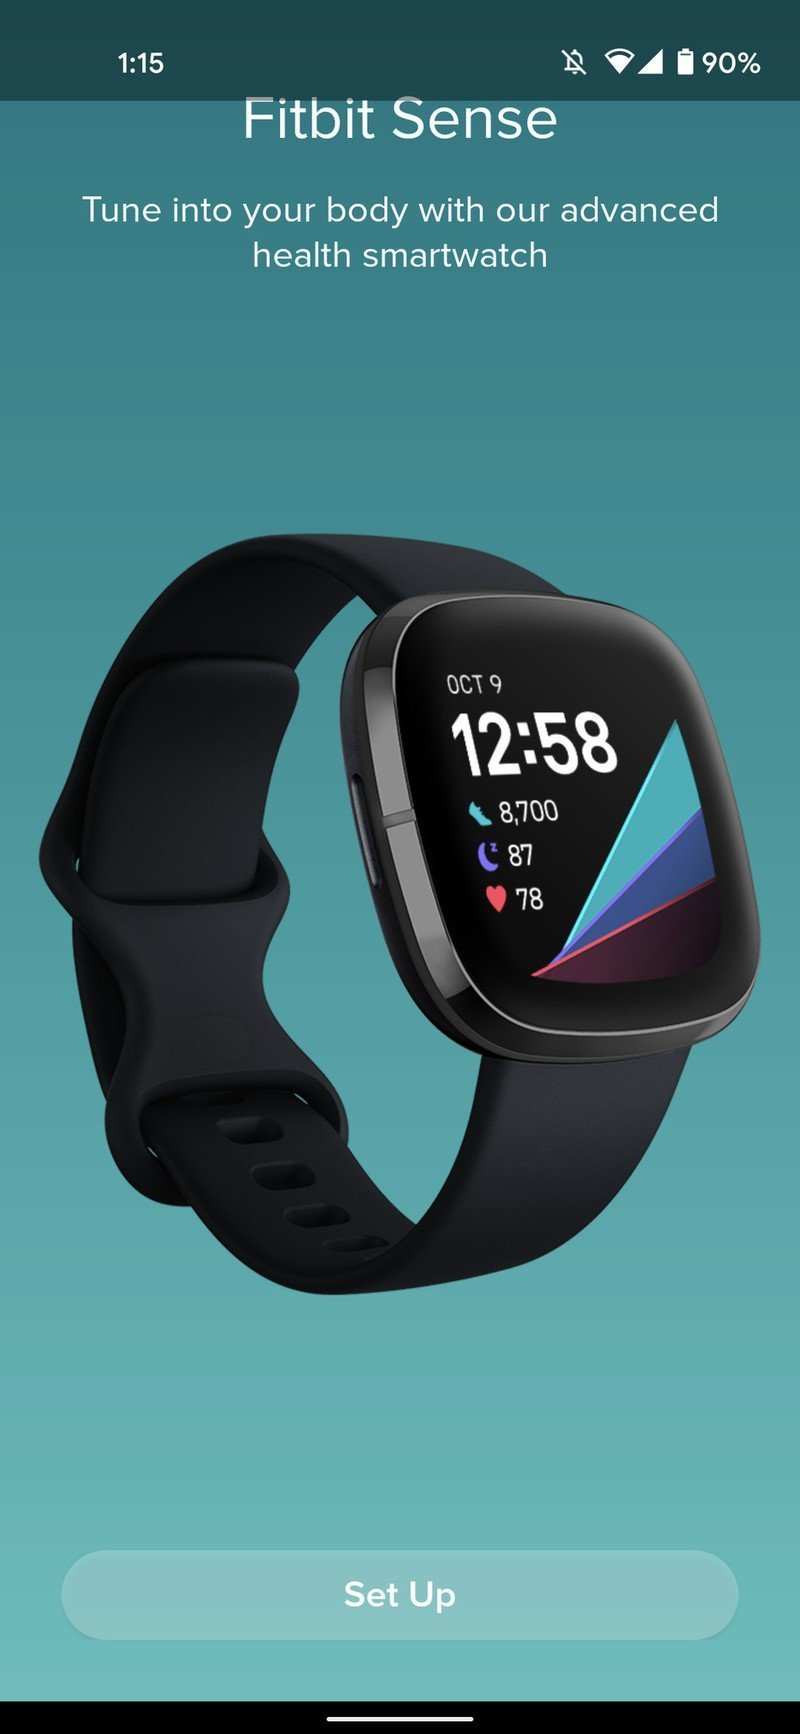 how-set-up-fitbit-2020-10.jpg